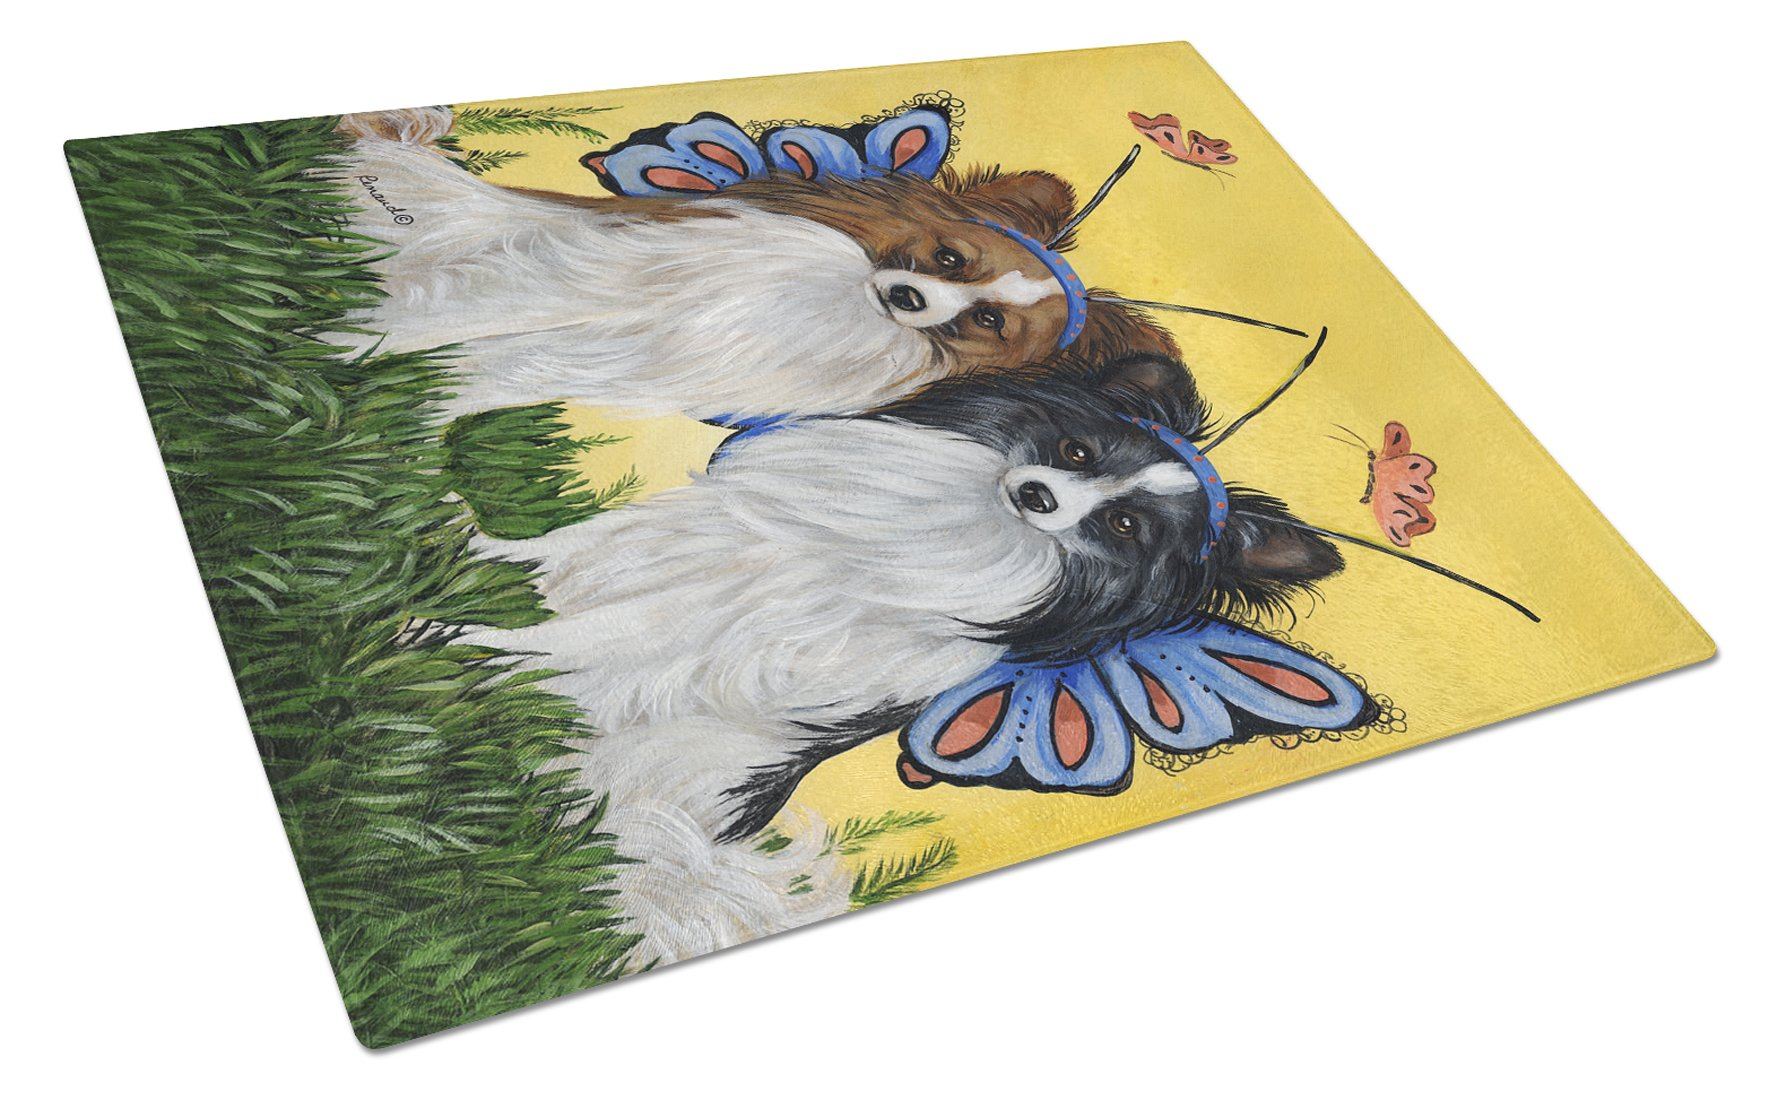 Papillon Butterflies Glass Cutting Board Large PPP3143LCB by Caroline's Treasures